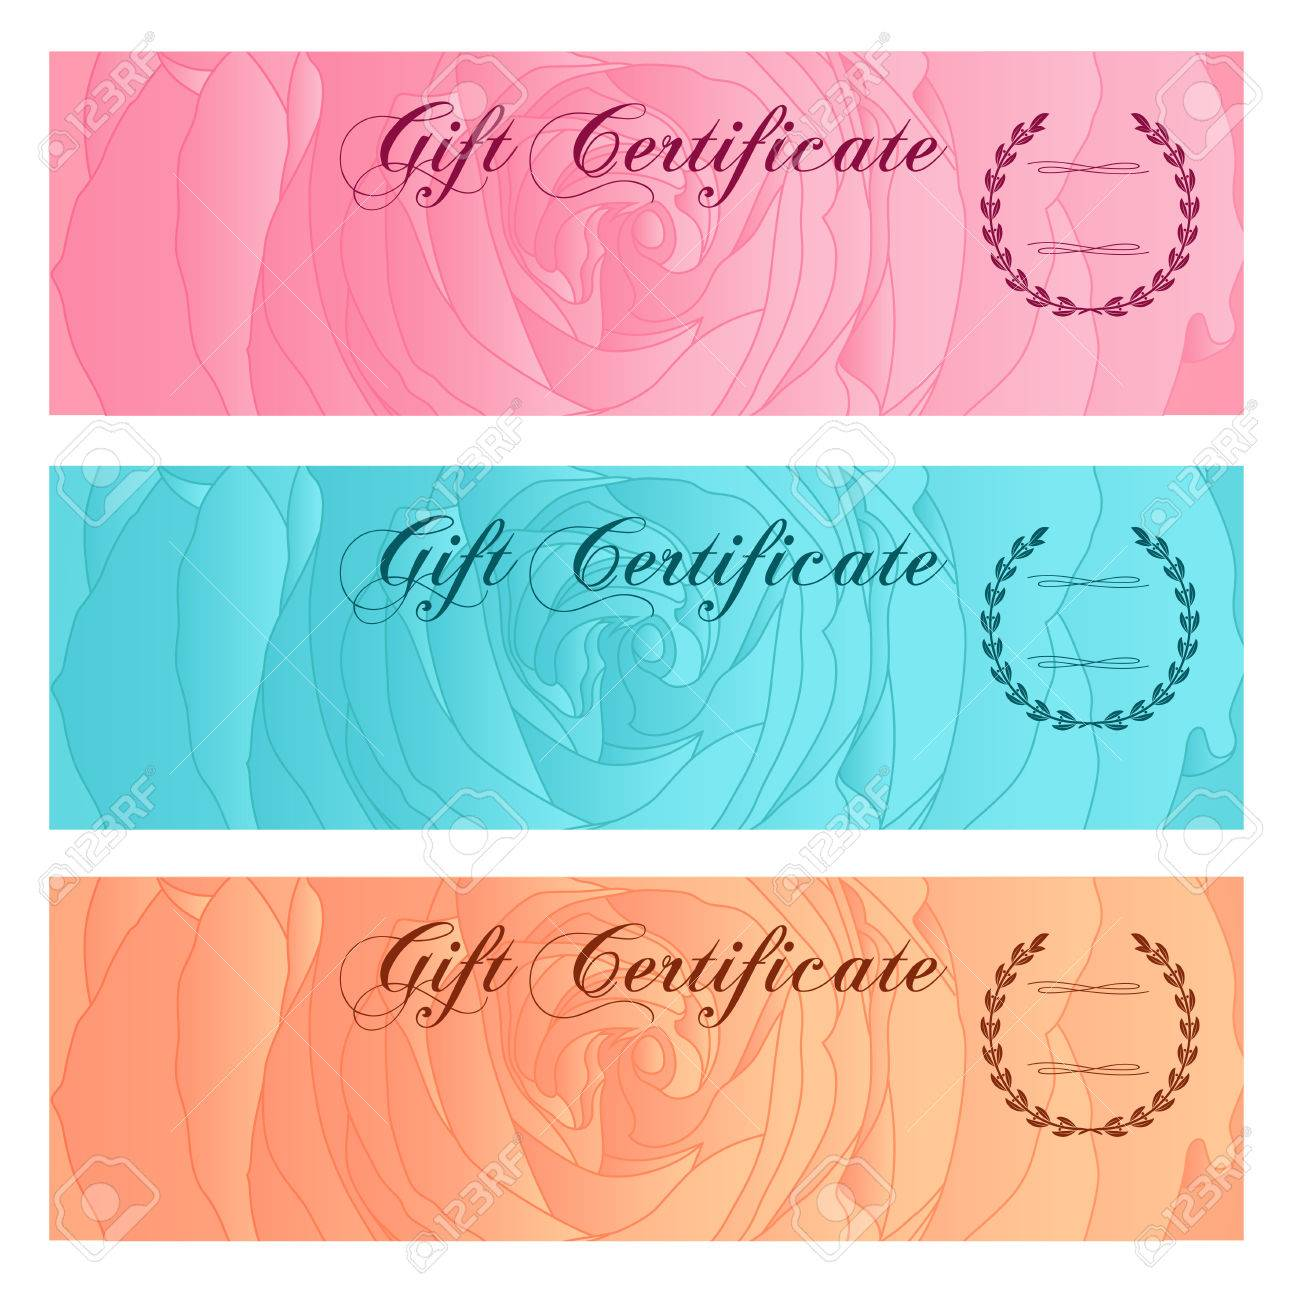 Gift Certificate Voucher Coupon Reward Or Gift Card Template